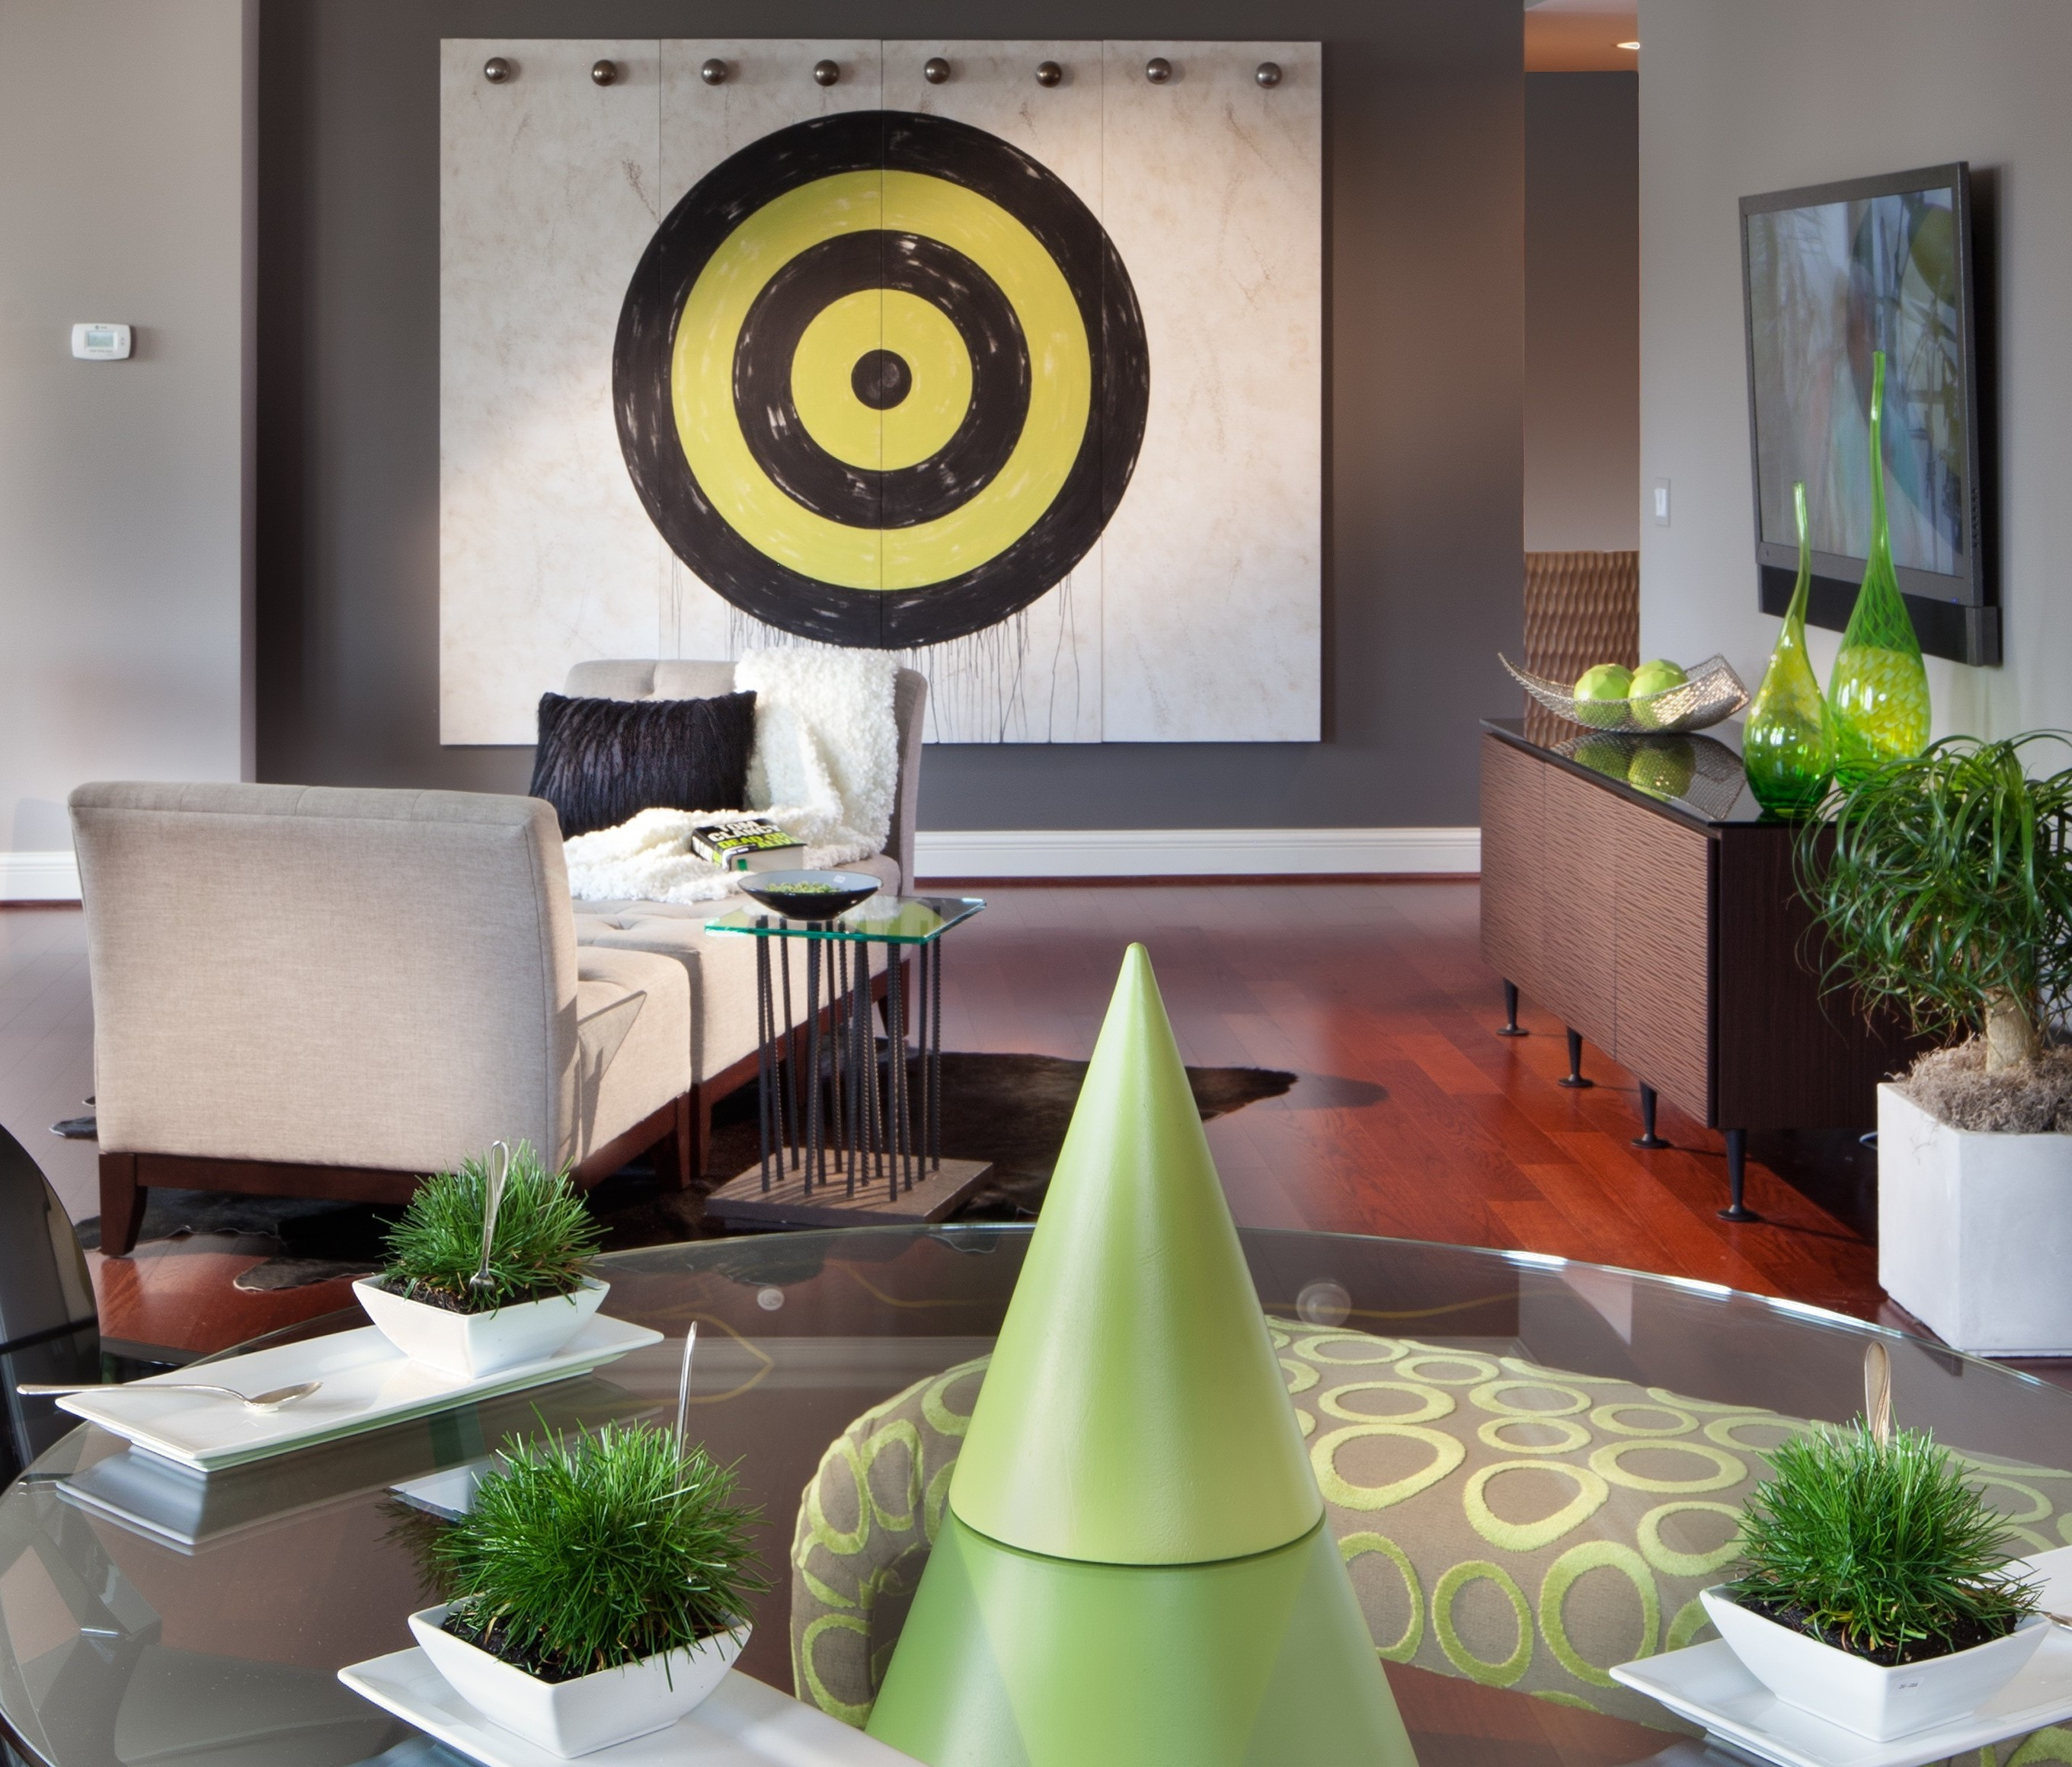 Victor-Liberatore-Interior-Design-Maryland